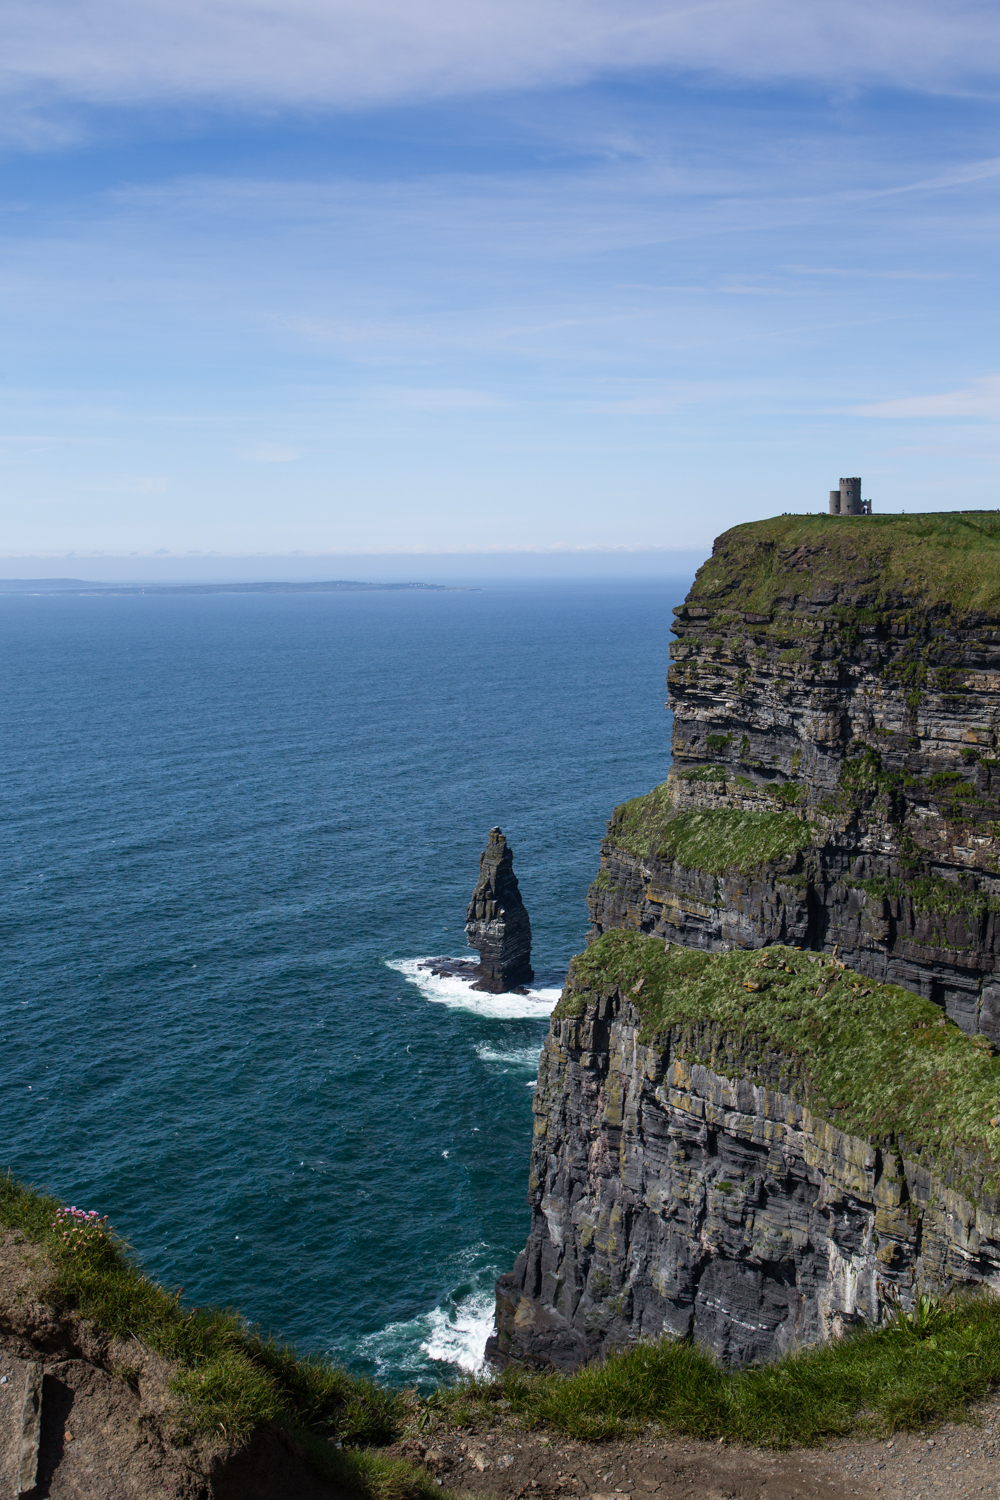 The Cliffs of Moher, The Stack and O'Brien's Tower